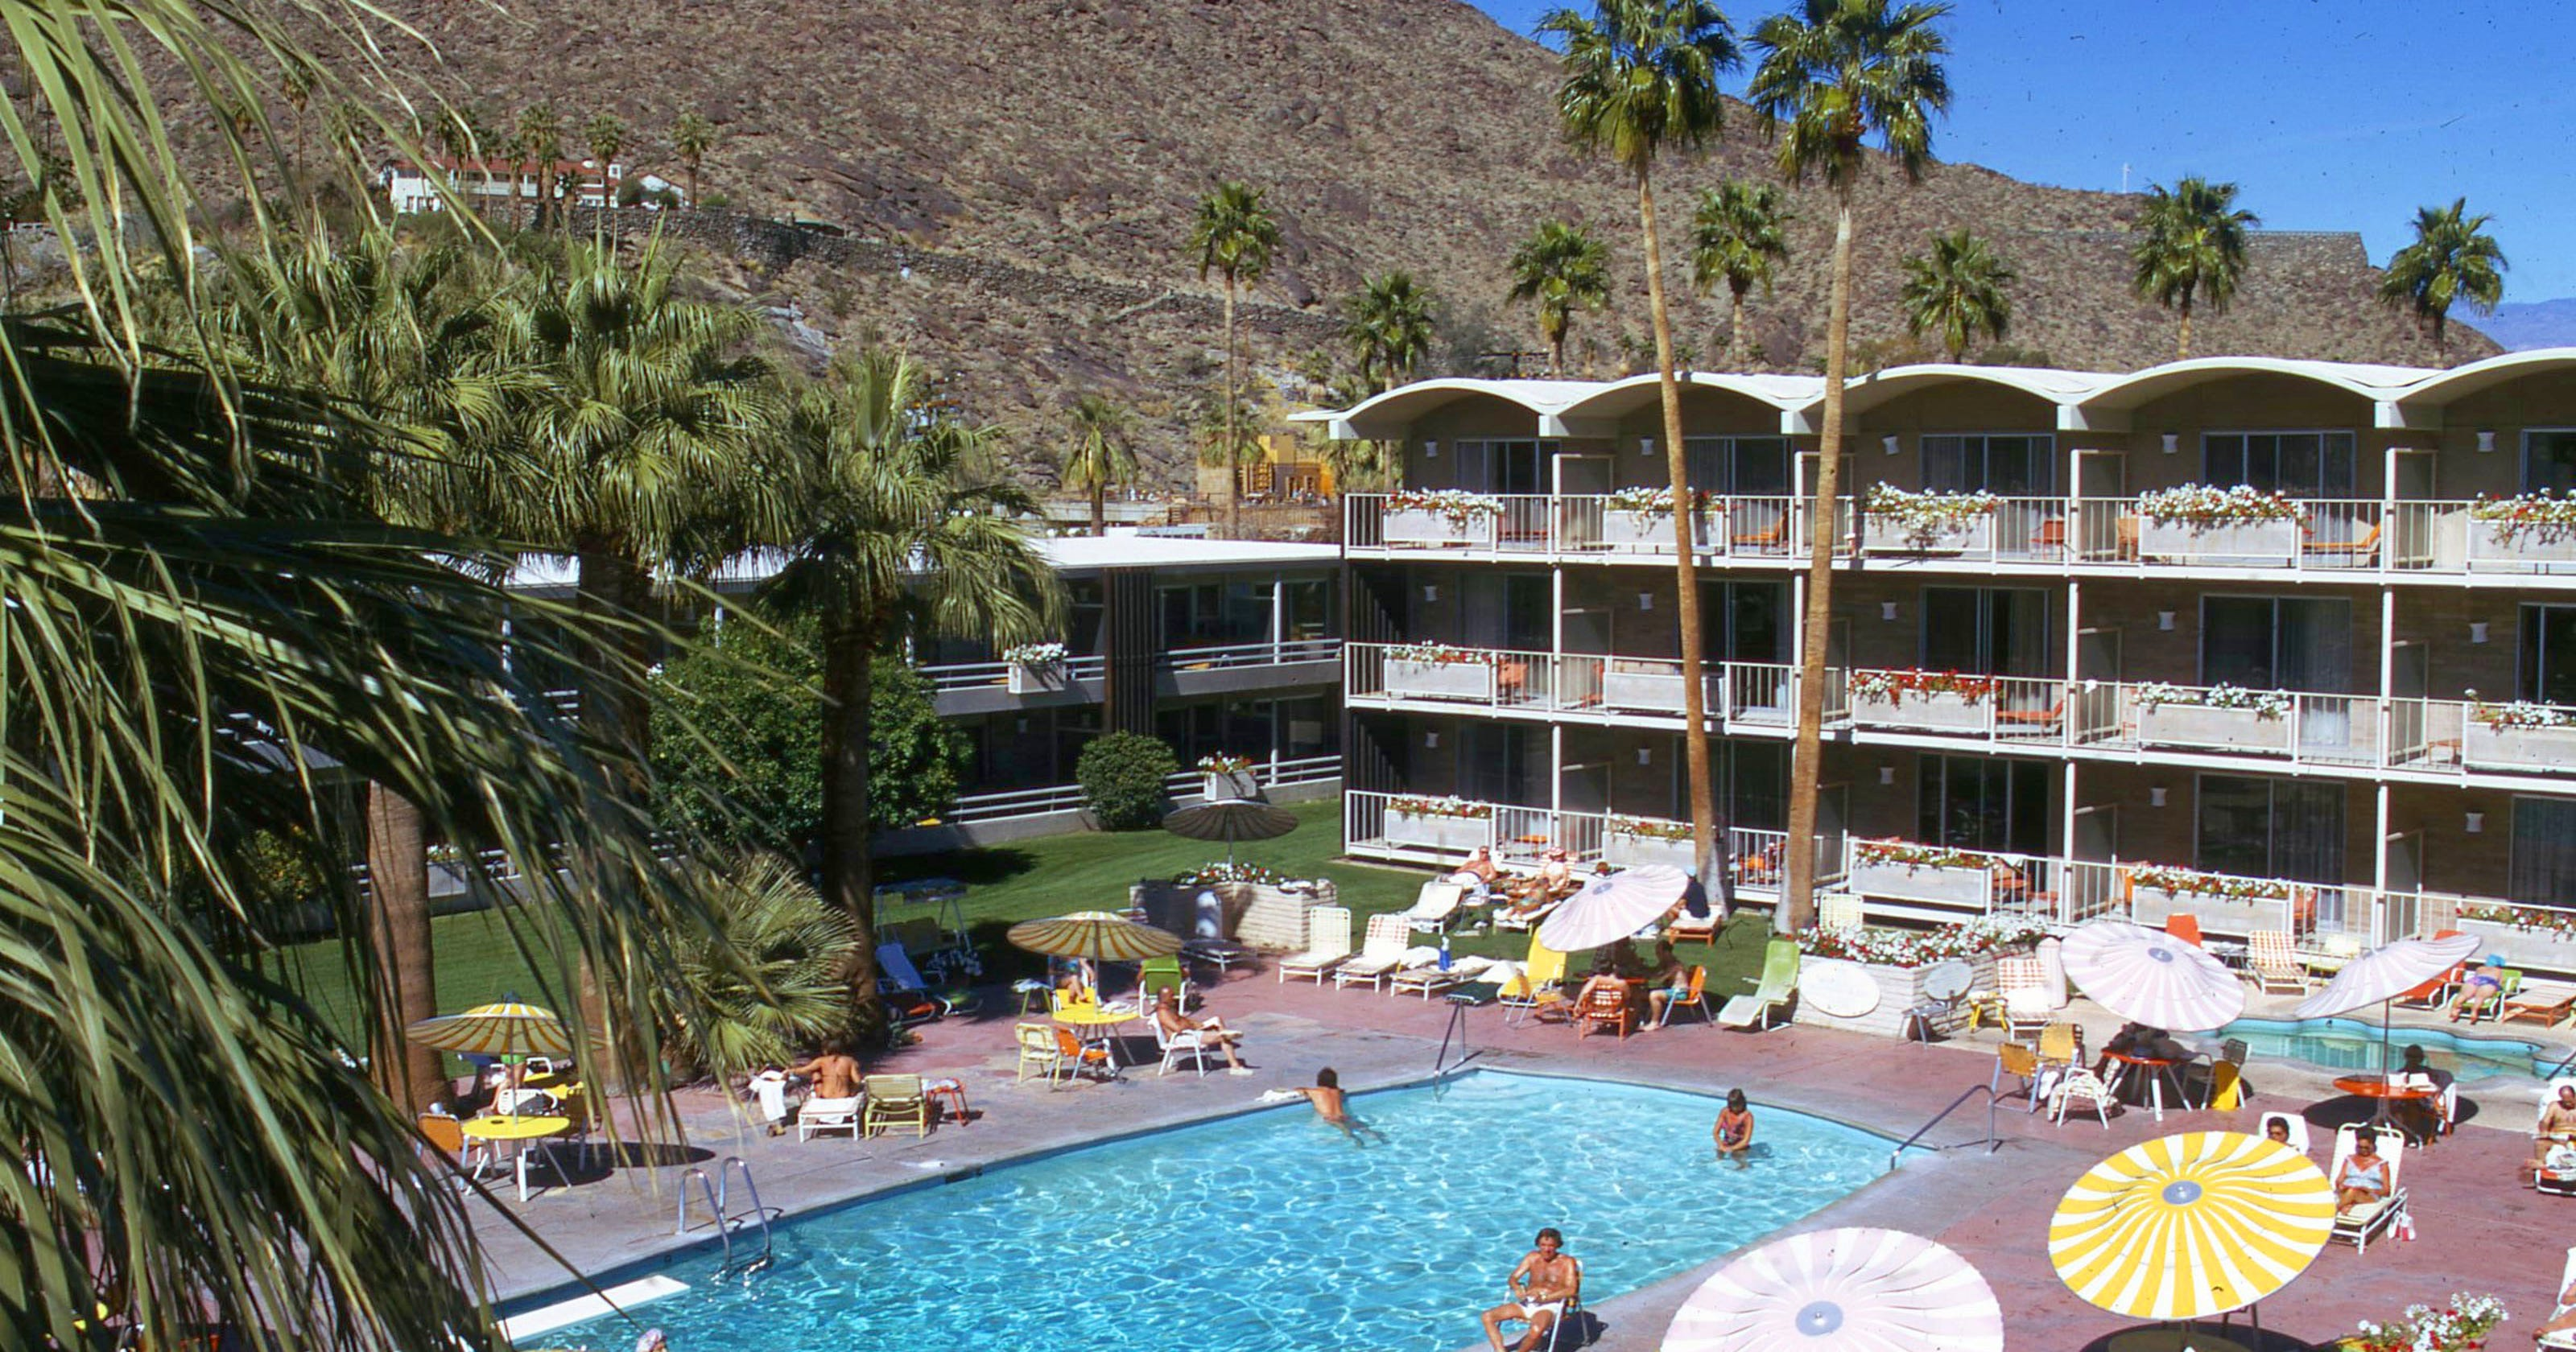 Palm Springs Hotels >> Palm Springs History The Garlicks Built Up Oasis Hotel